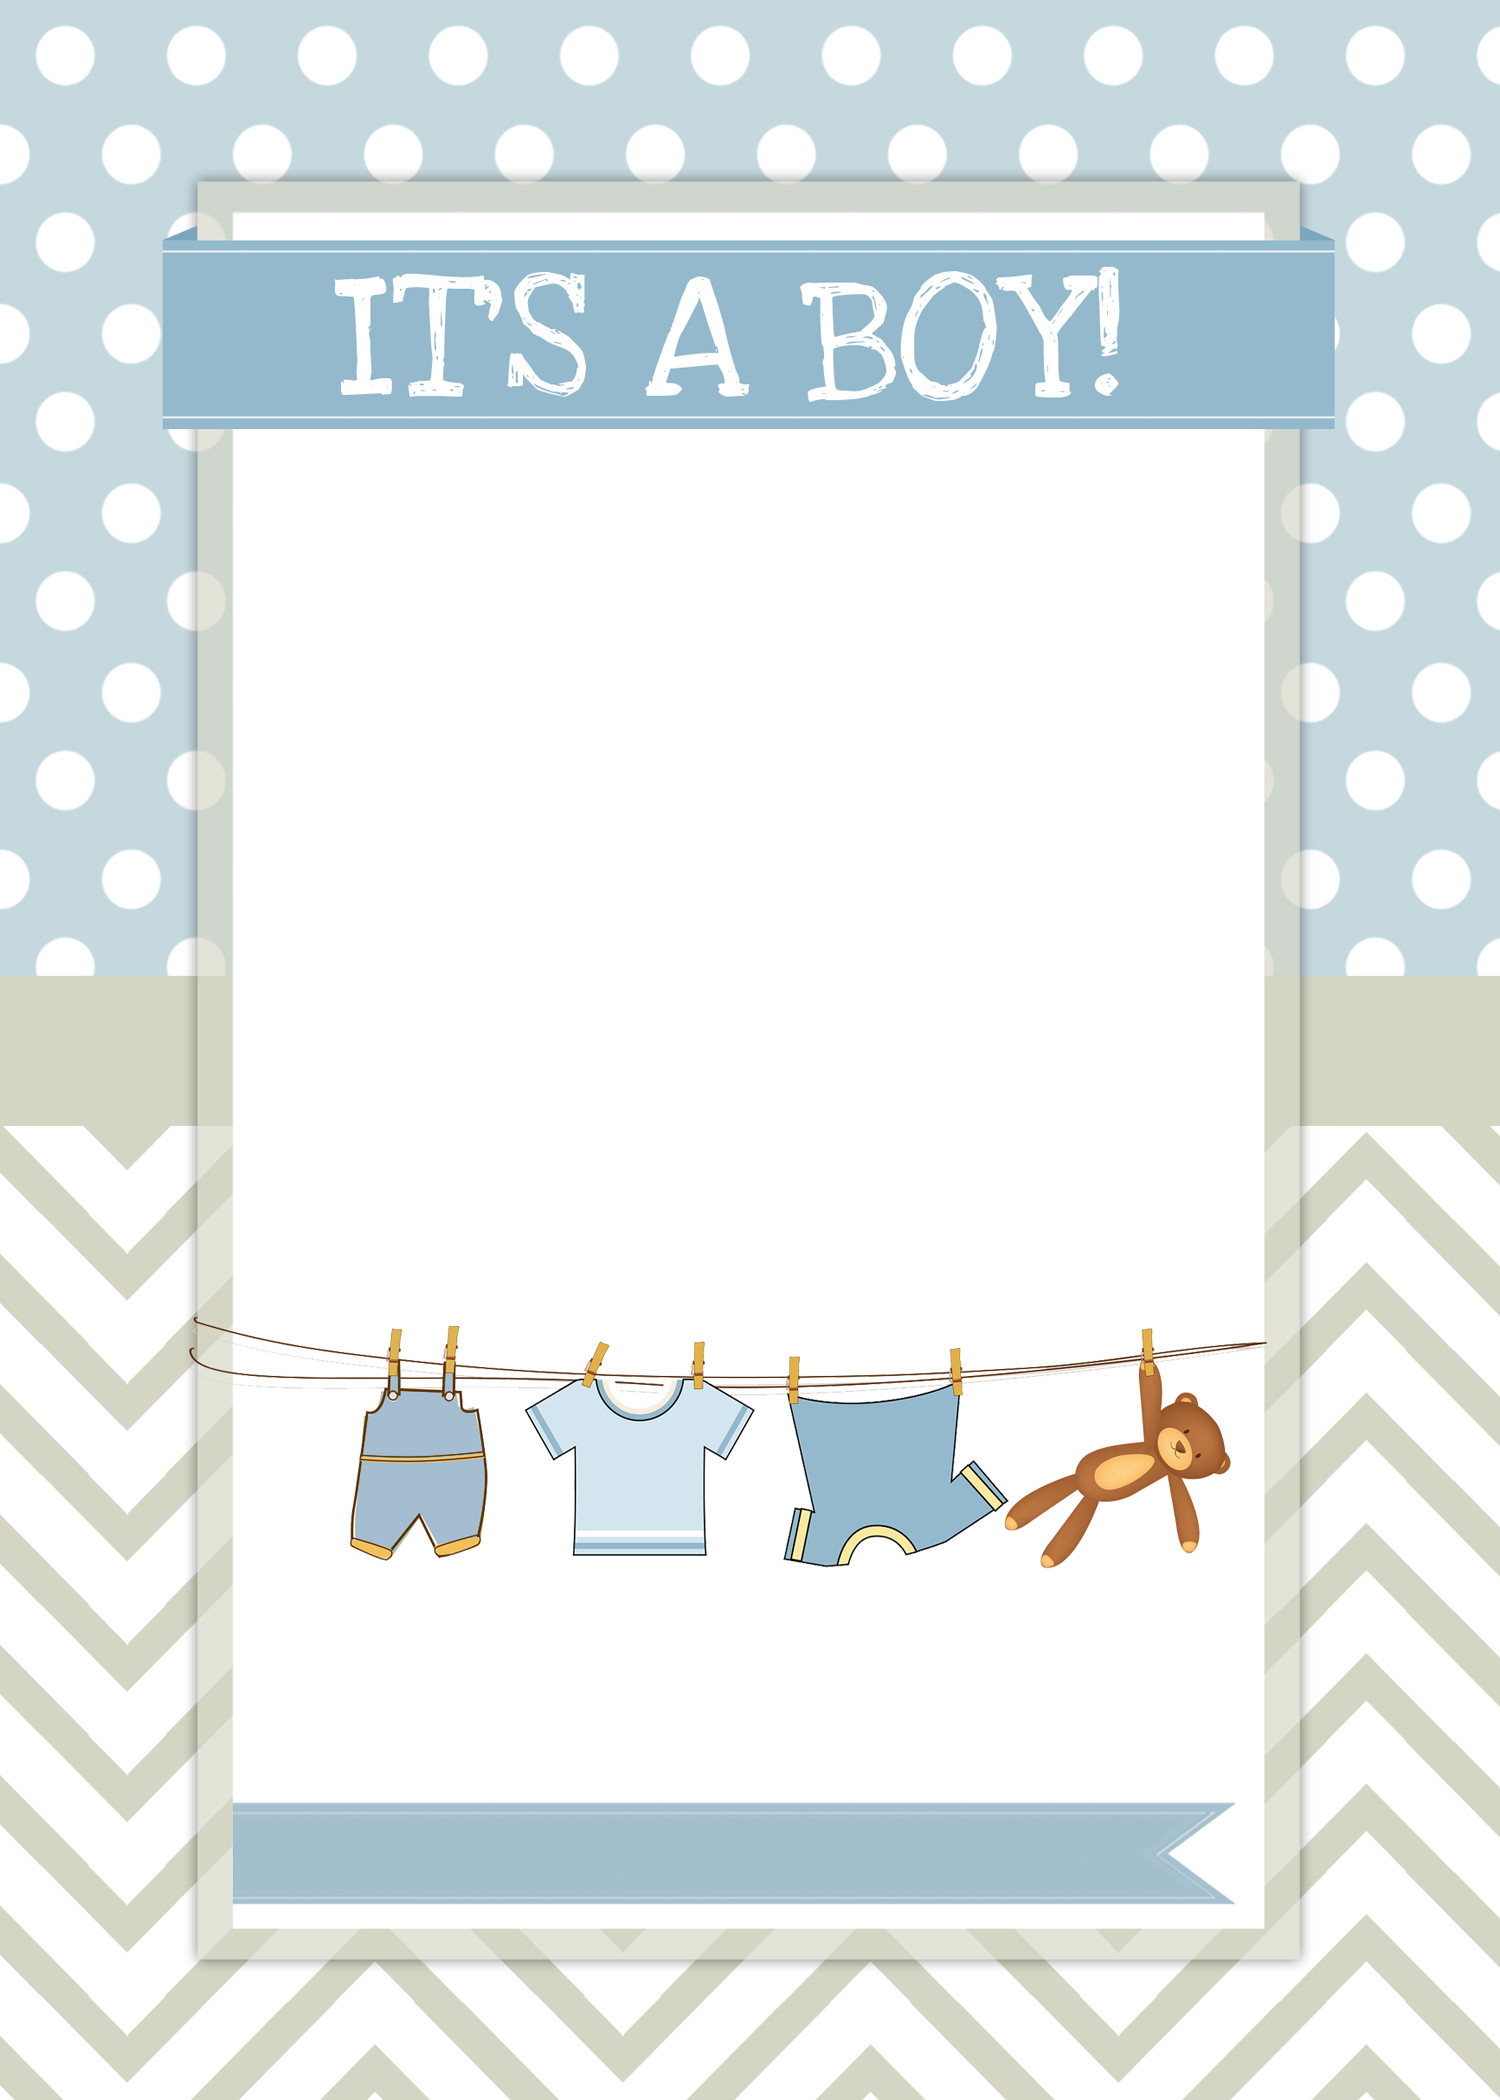 Baby shower wallpaper images 31 images 1500x2100 baby boy shower invite voltagebd Image collections